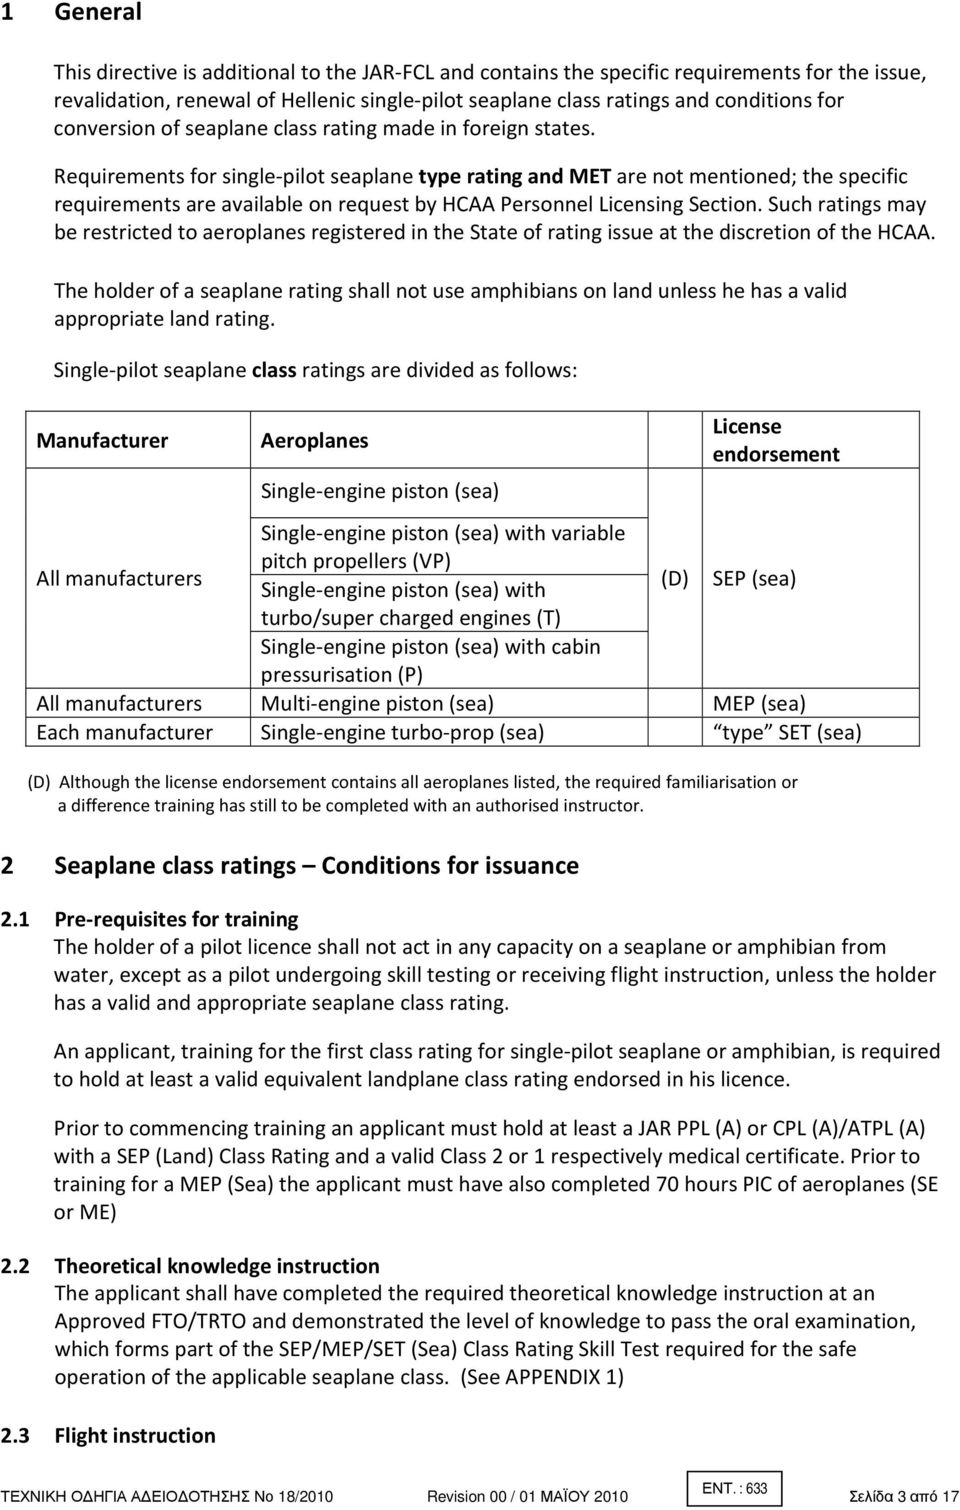 Requirements for single-pilot seaplane type rating and MET are not mentioned; the specific requirements are available on request by HCAA Personnel Licensing Section.